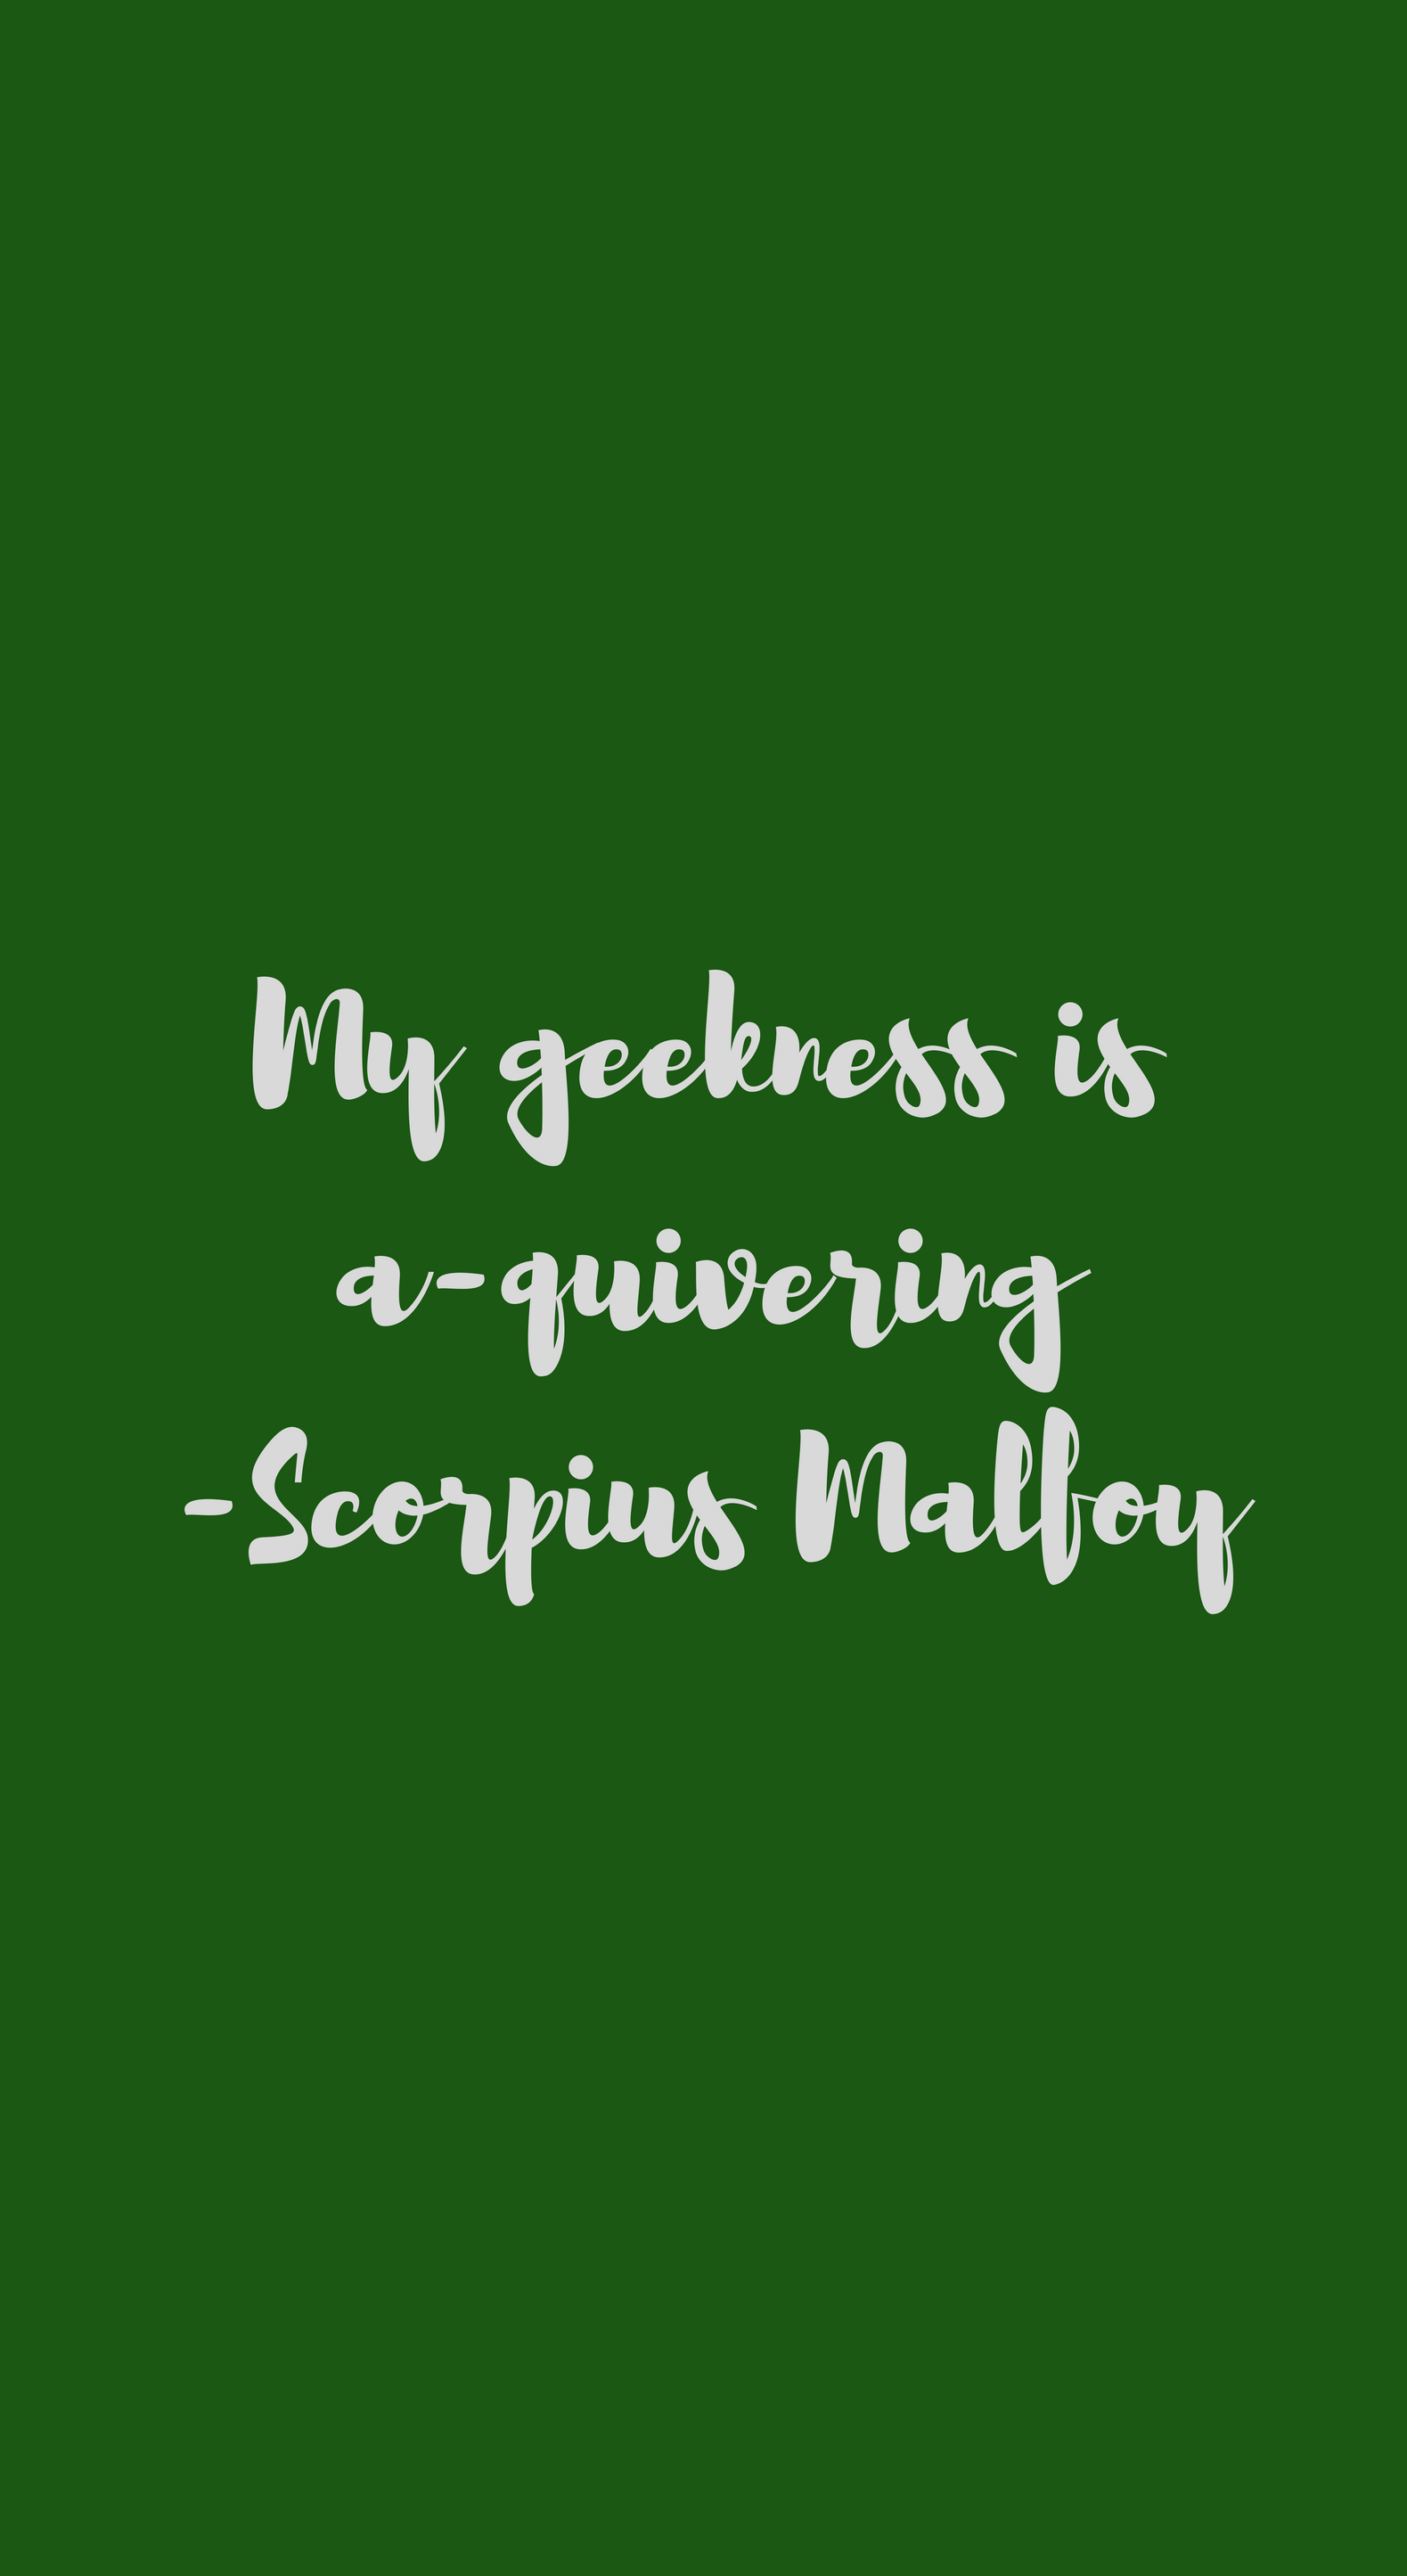 I Make My Own Wallpapers Scorpius Malfoy Quote For Iphone X Homemade Wallpaper Scorpius Malfoy Wallpaper Backgrounds